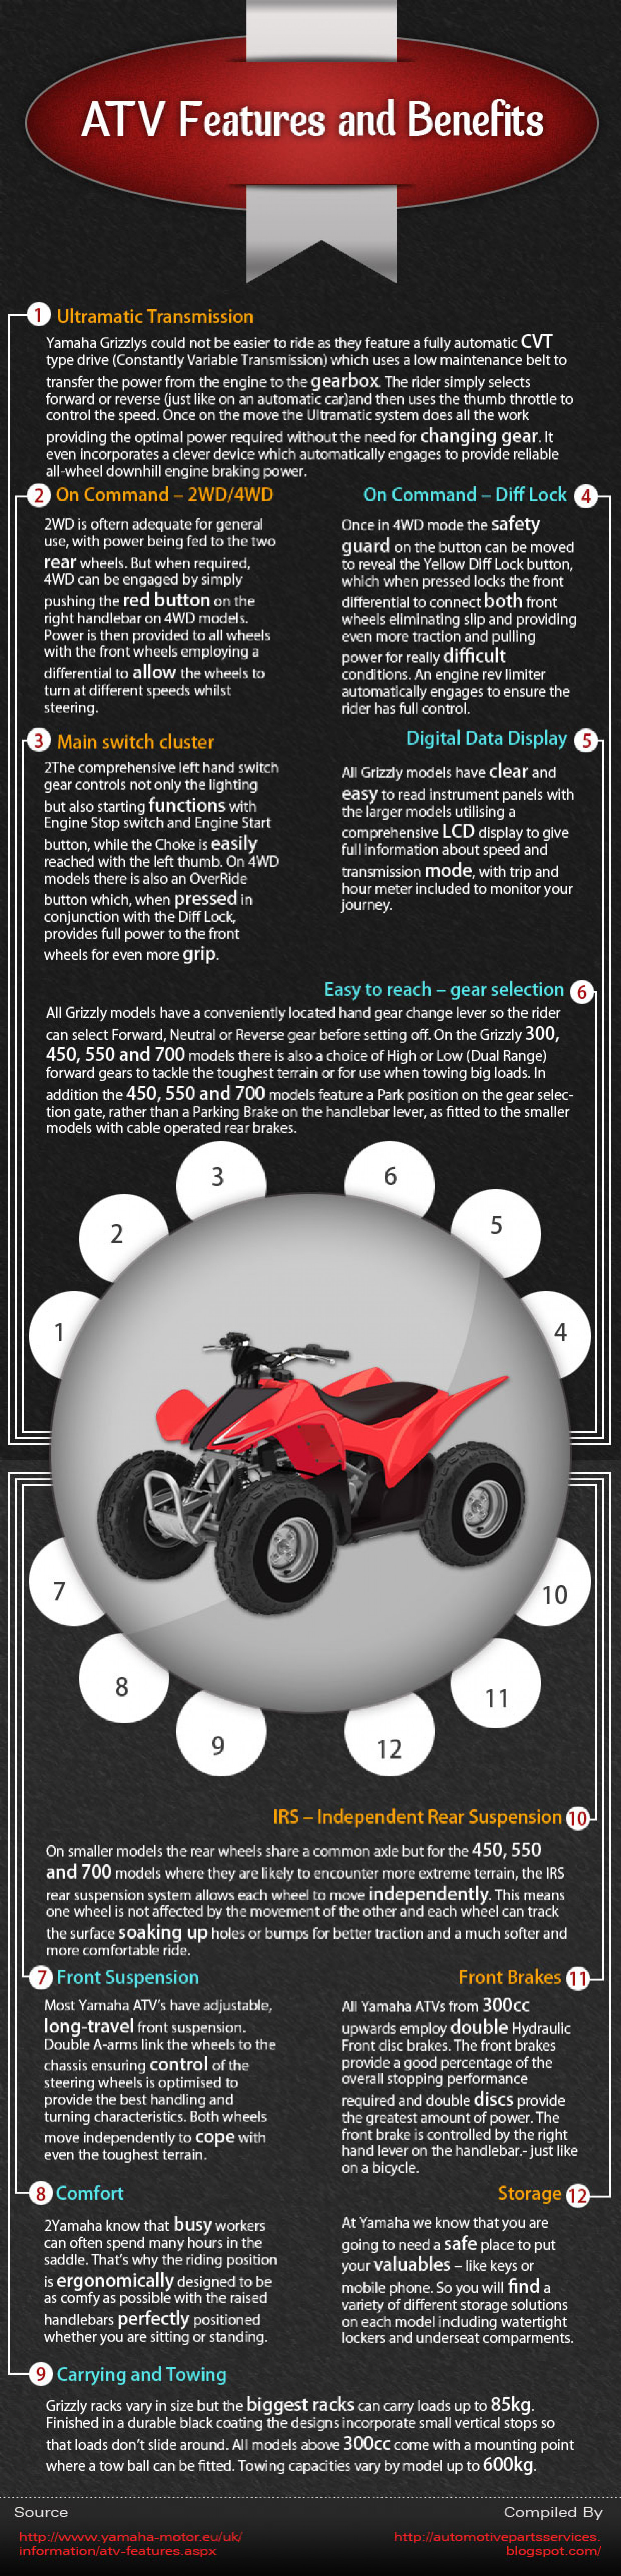 ATV Feature and Benefits  Infographic